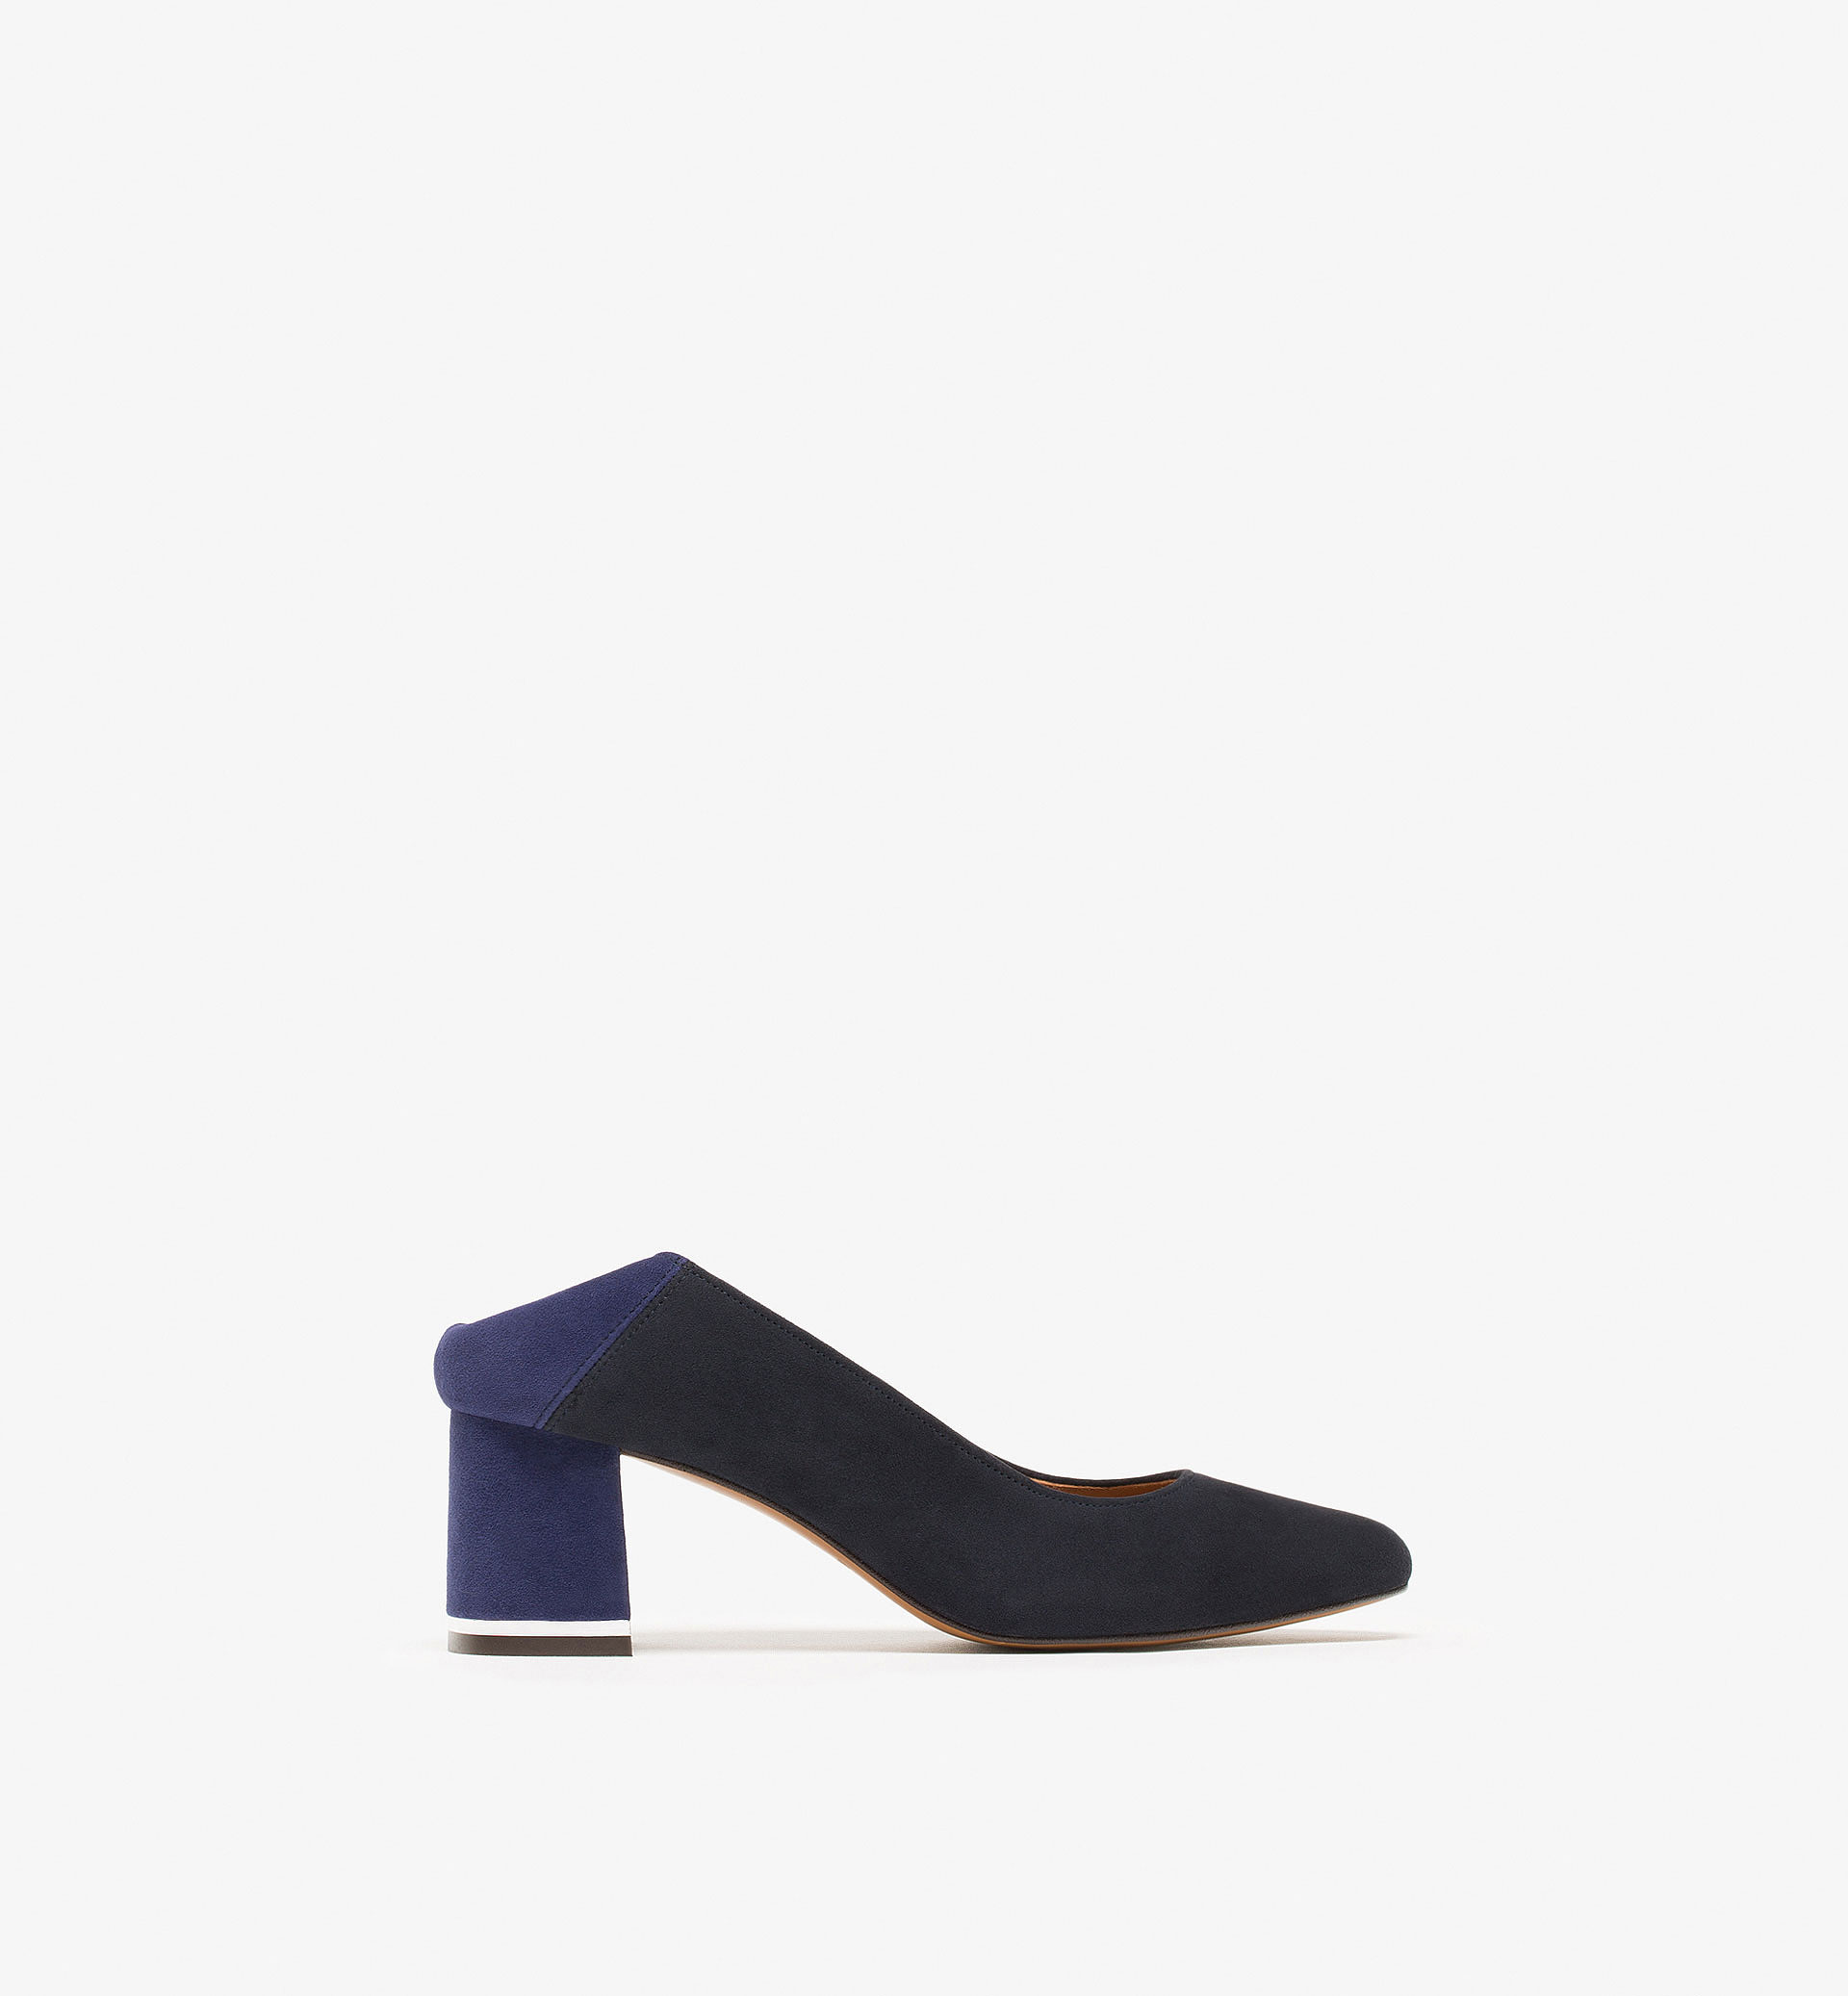 BLUE SUEDE HIGH HEEL BABOUCHES LIMITED EDITION